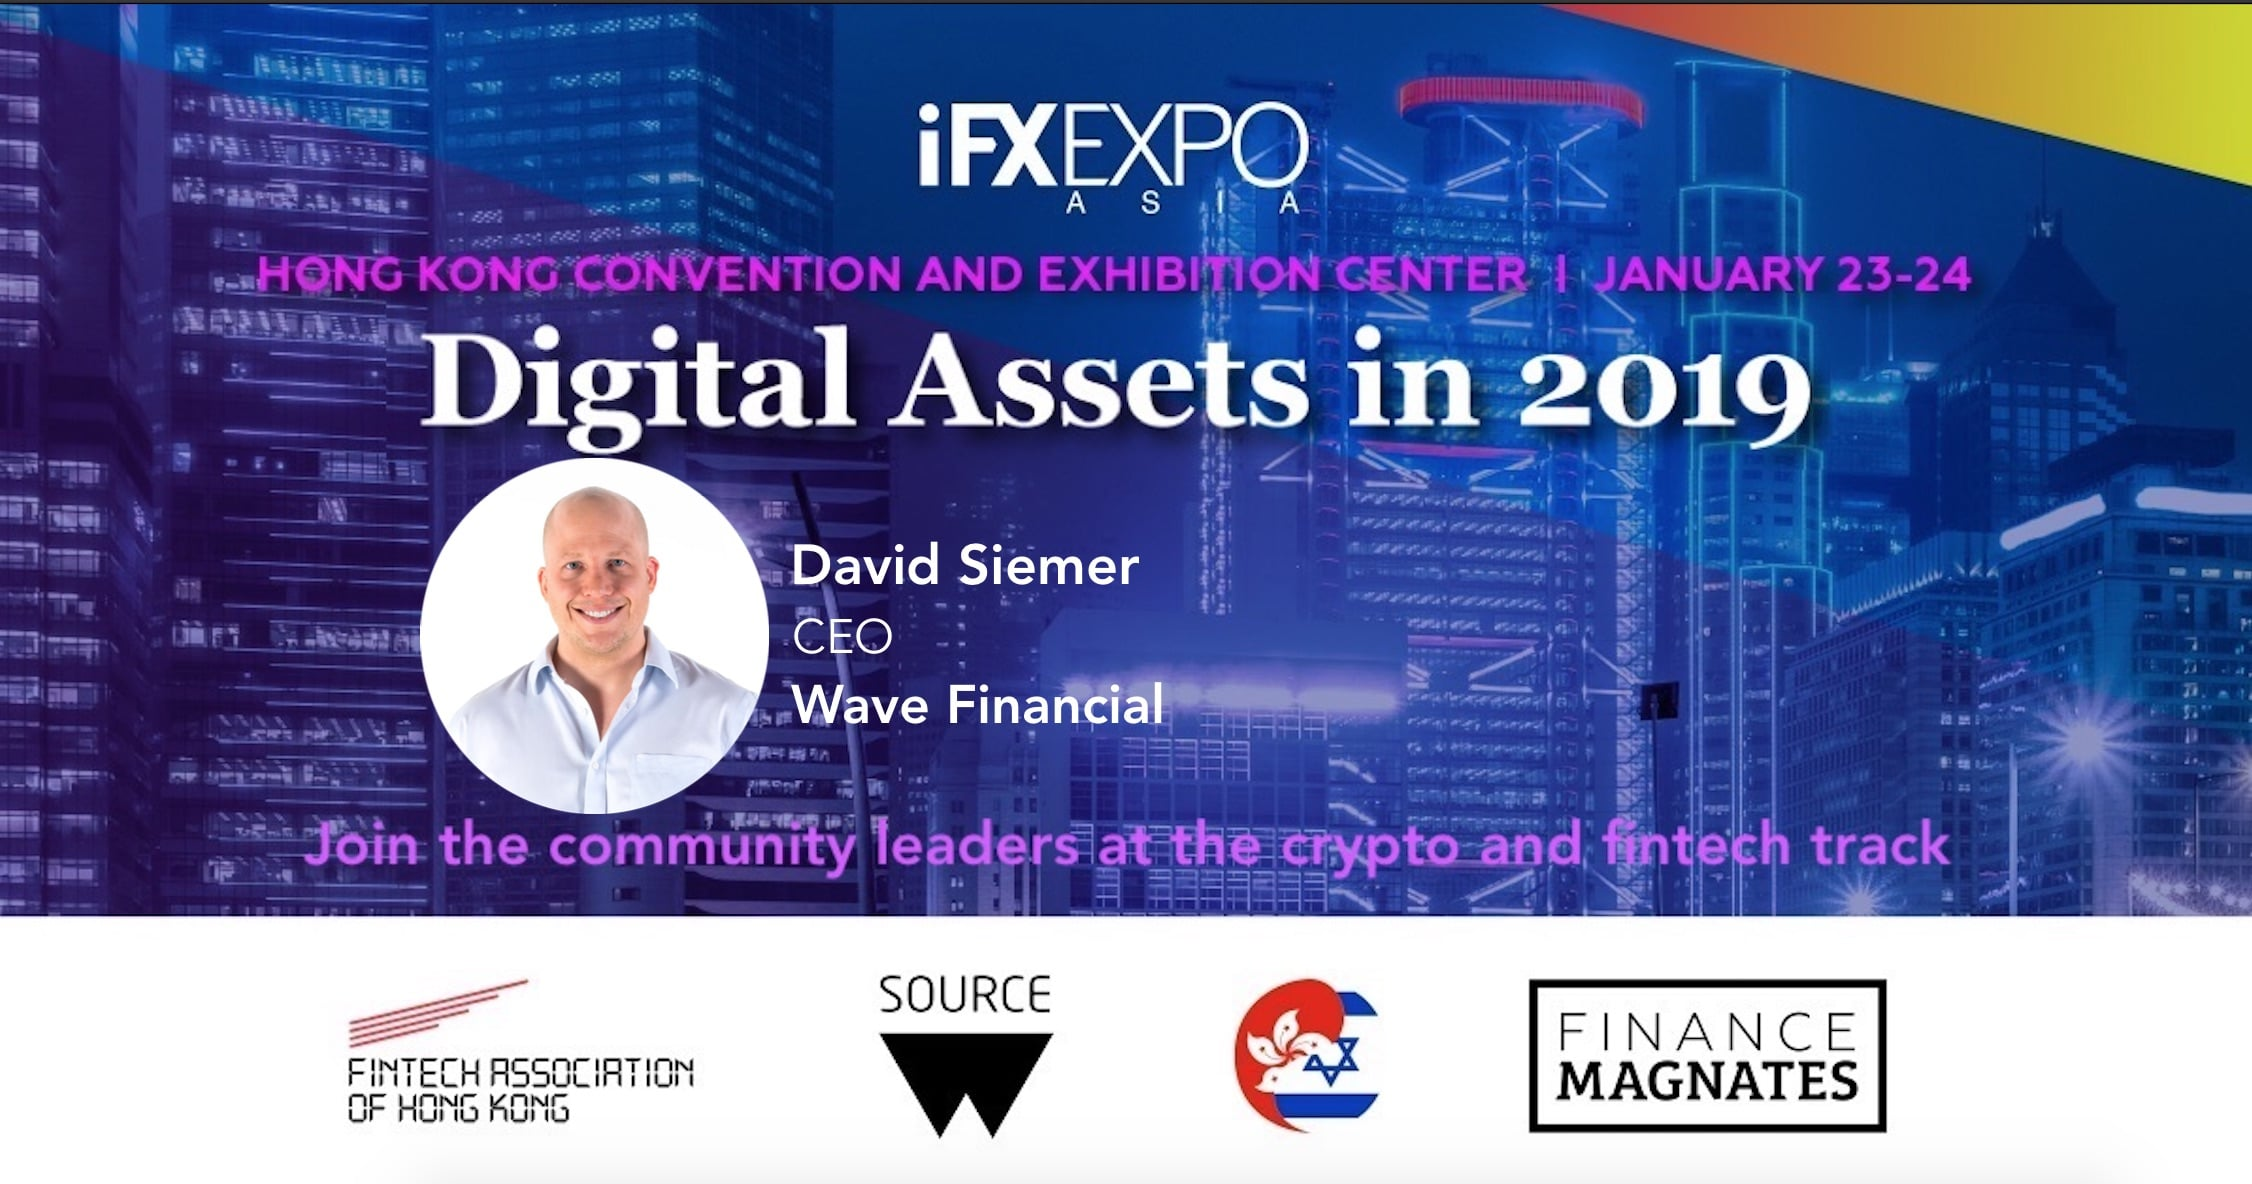 David Siemer, Wave Financial, IFX EXPO